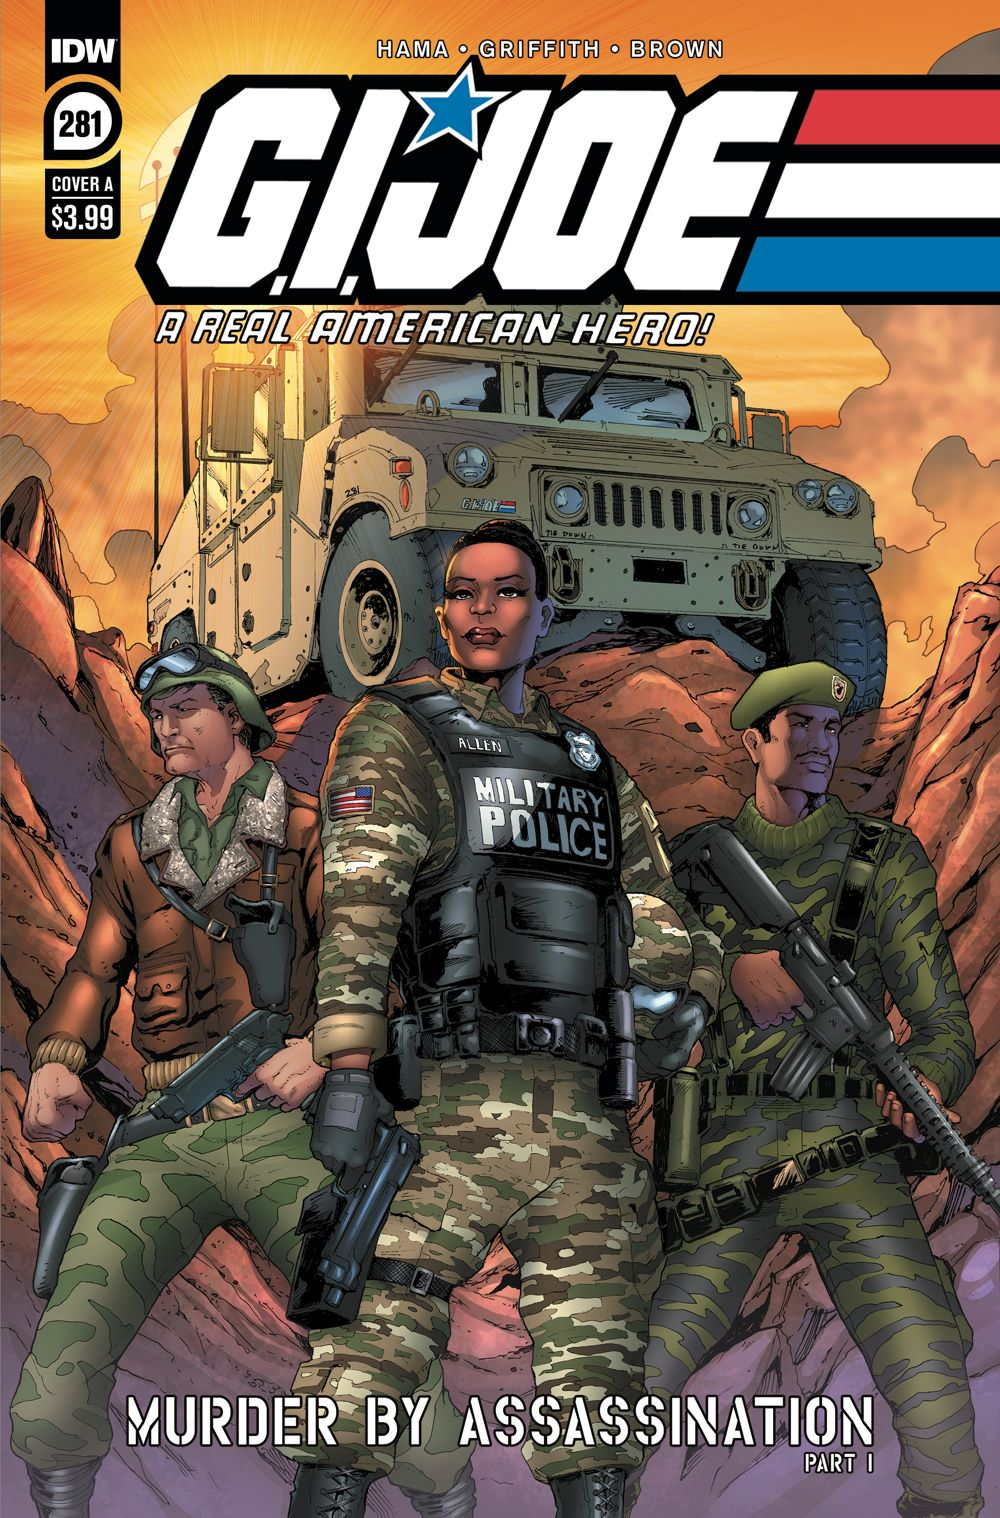 GIJoeRAH281-coverA ComicList: IDW Publishing New Releases for 05/12/2021